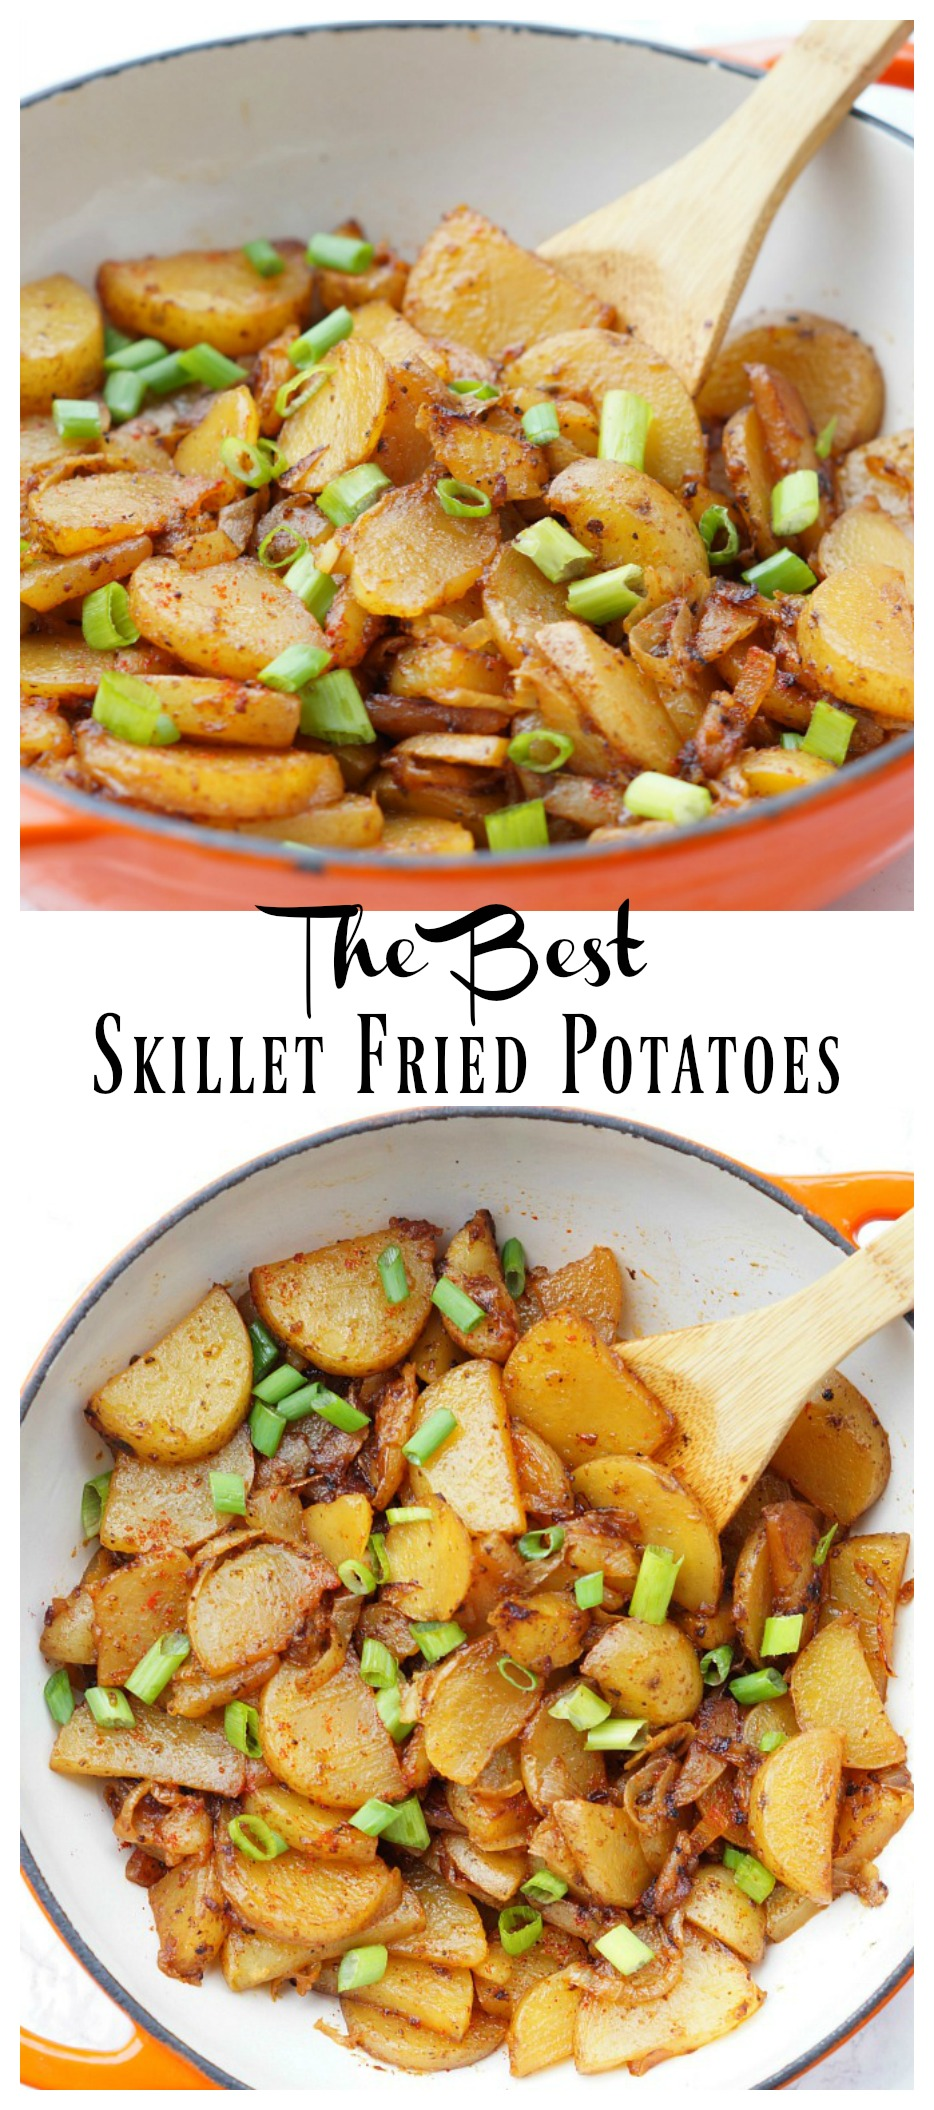 The Best Skillet Fried Potatoes with Two Secret Ingredients that make these perfect!